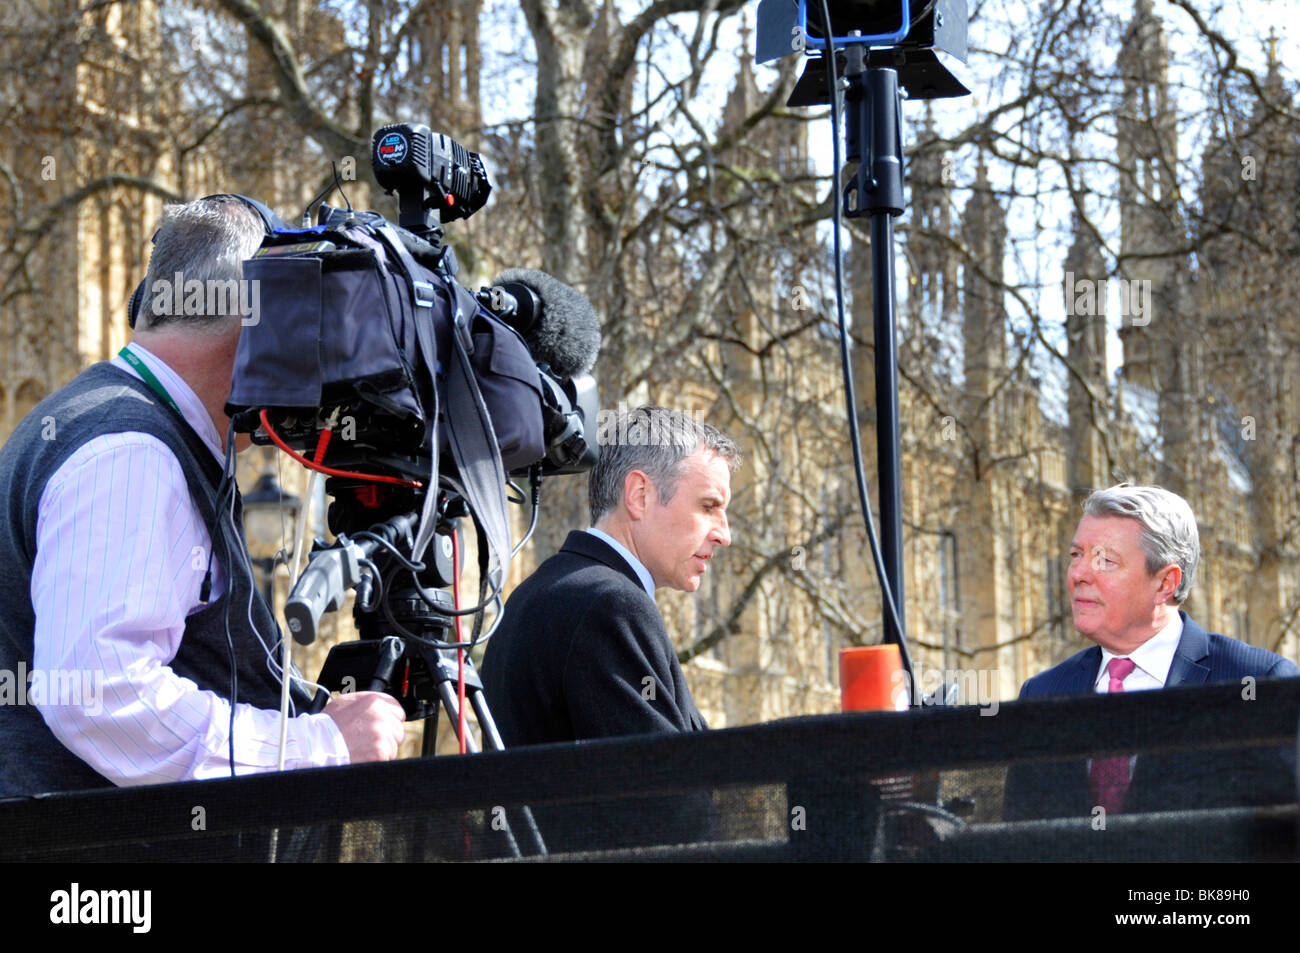 Sky News TV presenter Dermot Murnaghan interviewing Home Secretary Alan Johnson on podium outside Parliament - Stock Image